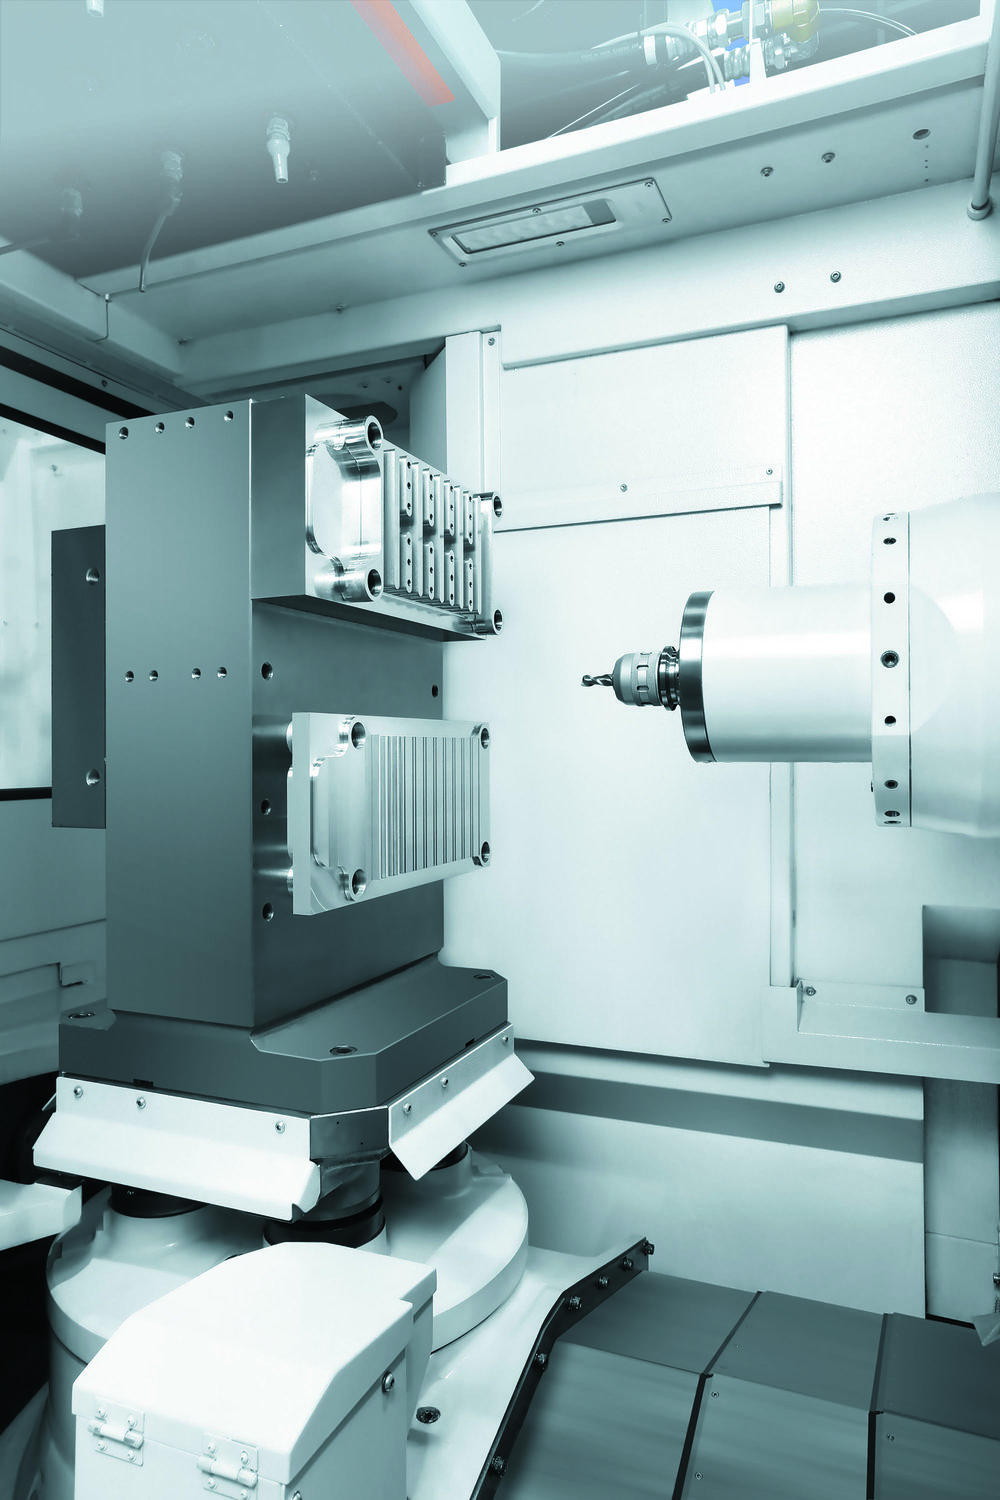 Horizontal machining centers -